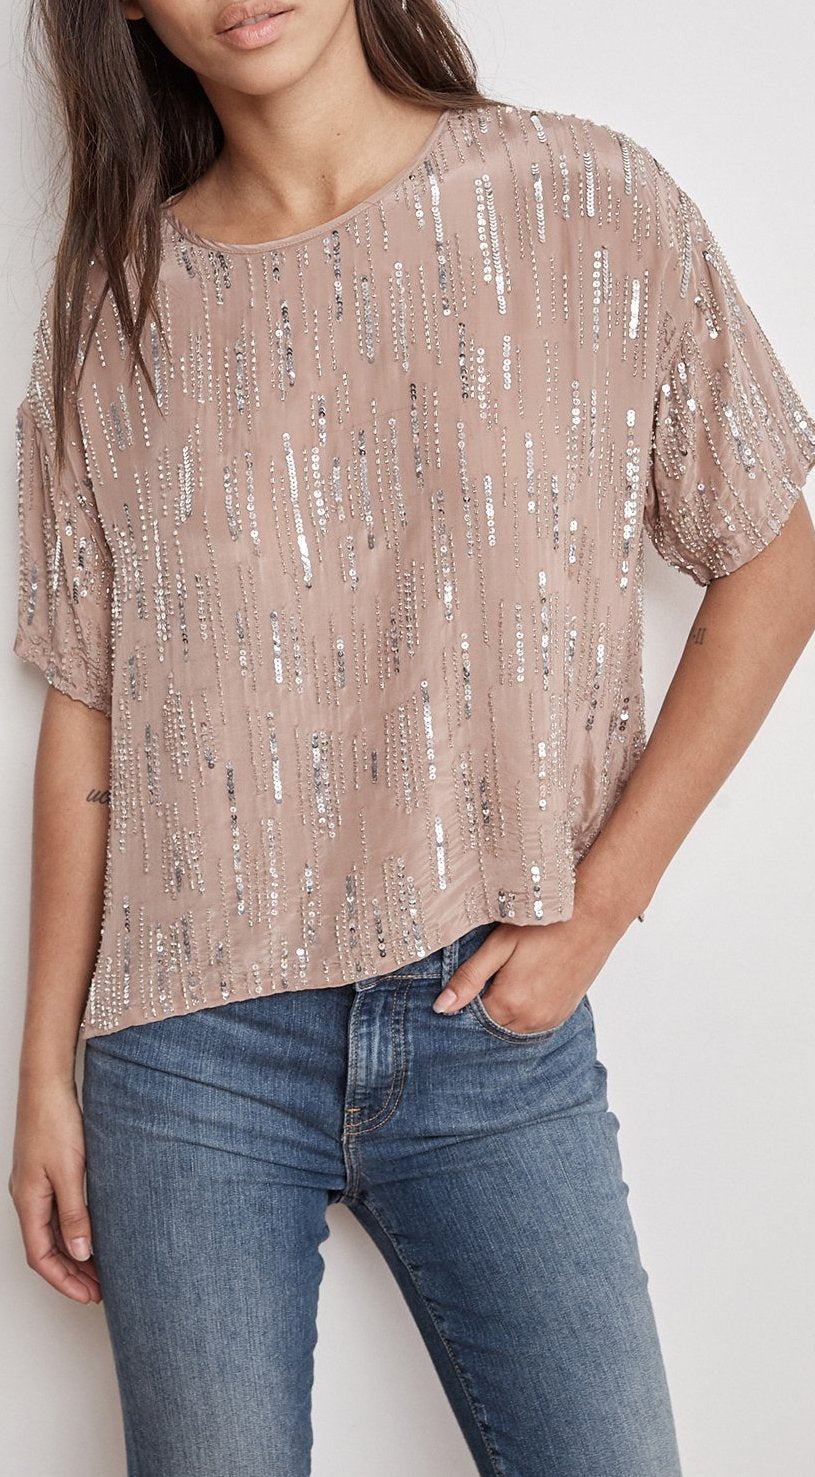 Velvet Brighton Raindrop Sequins Top BRIGHTON03